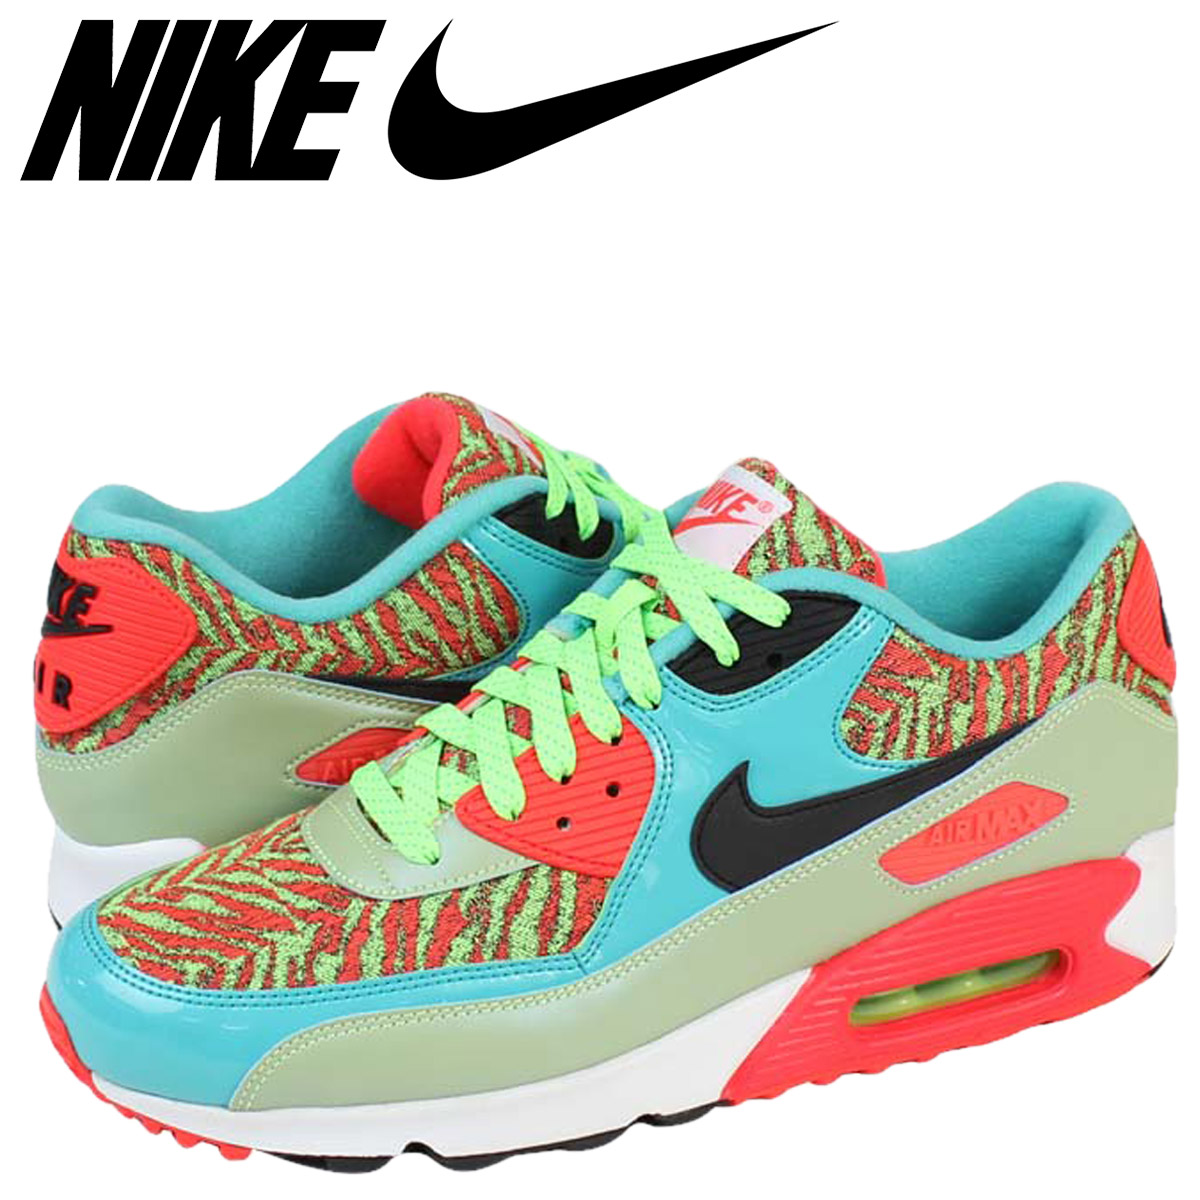 info for f2c5b ce091 NIKE Nike Air Max sneakers AIR MAX 90 ANNIVERSARY Air Max 90 anniversary  725235 - 306 green mens